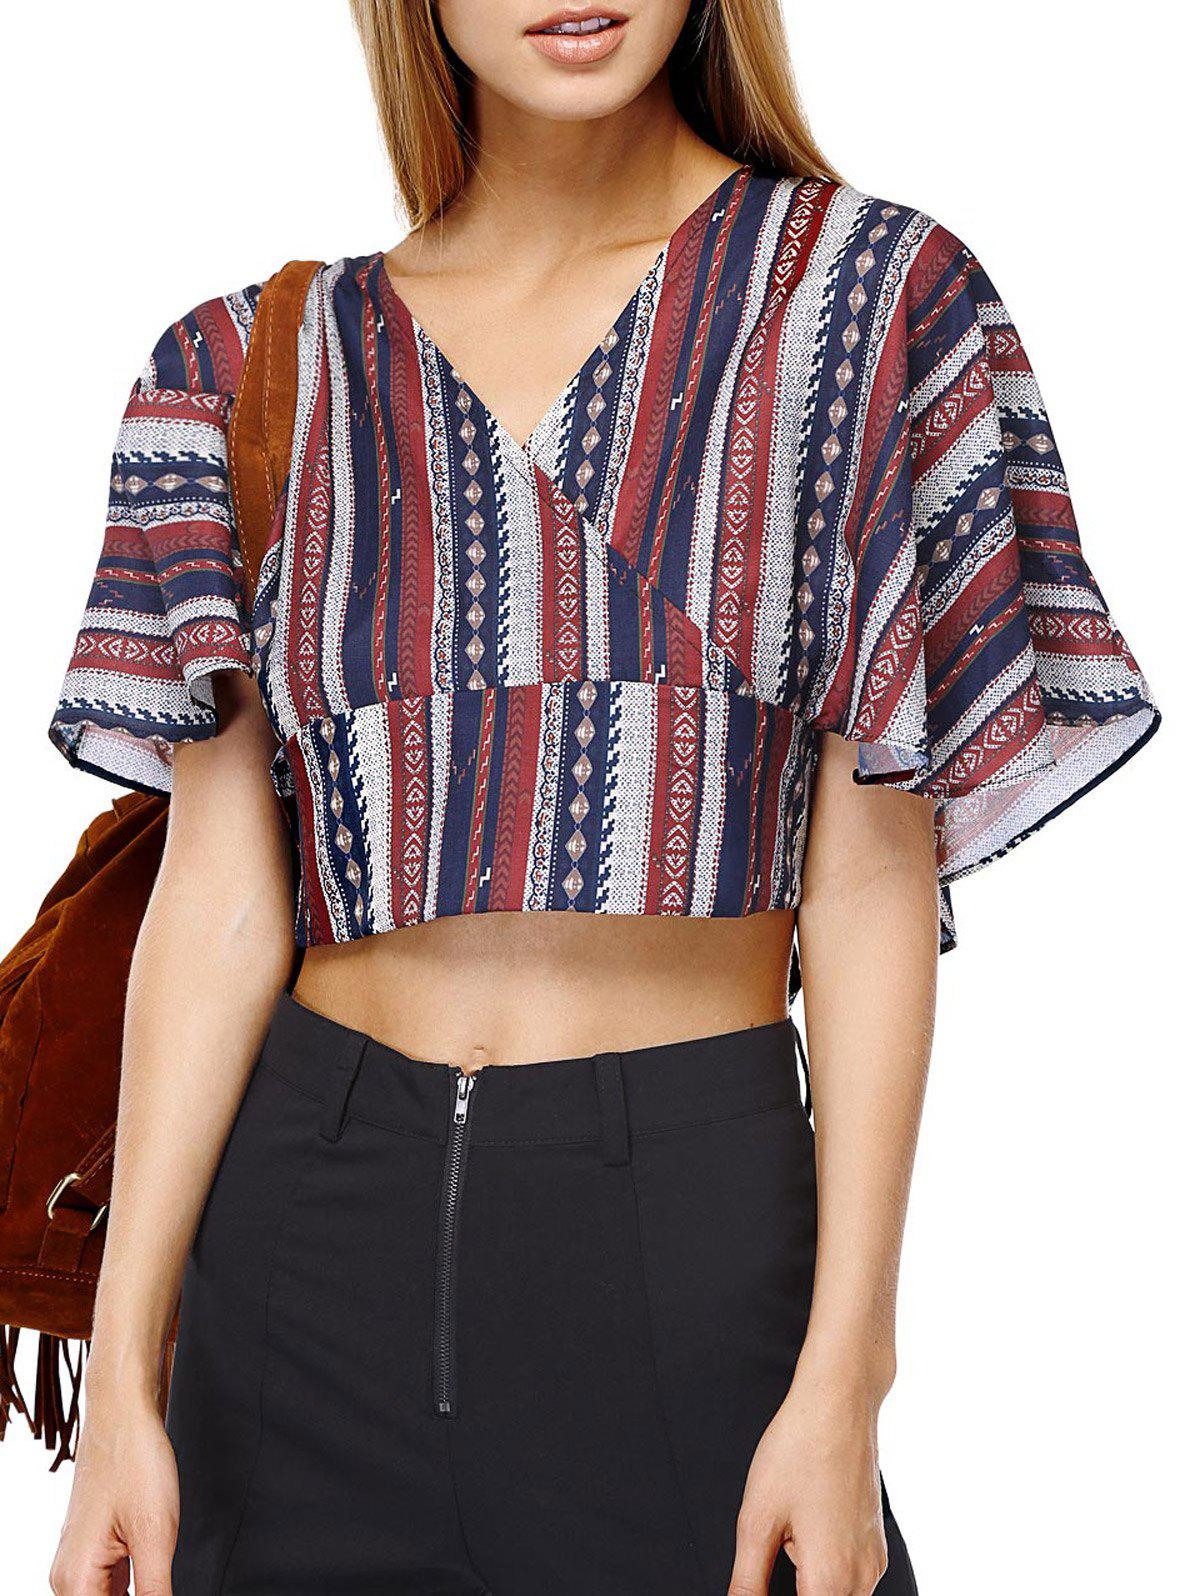 Ethnic Style Striped Batwing Sleeves Backless Tie Back Tee For Women - COLORMIX ONE SIZE(FIT SIZE XS TO M)